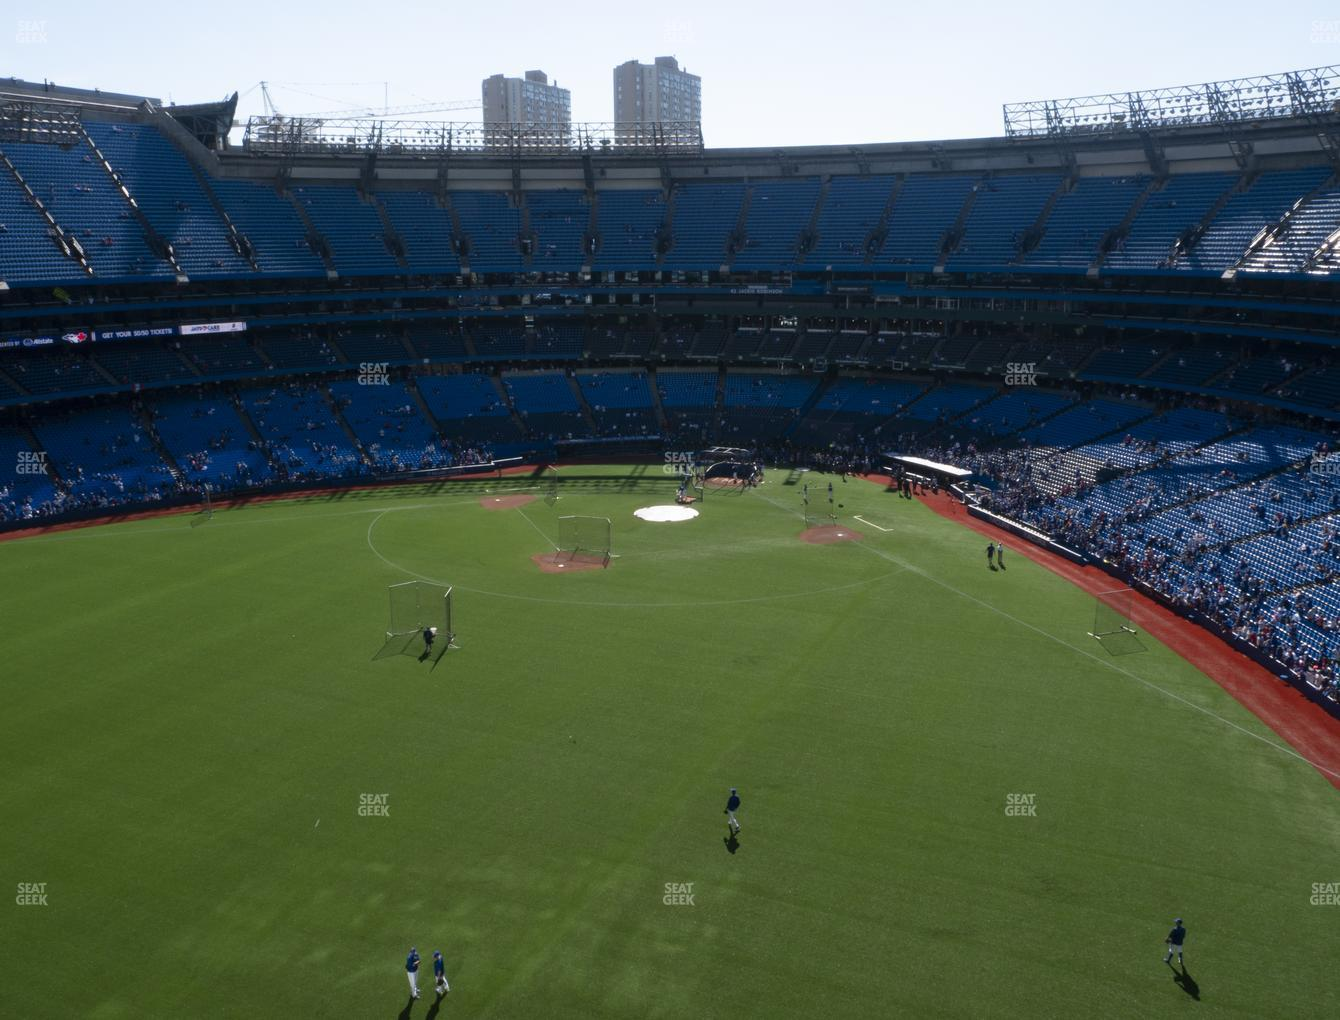 Toronto Blue Jays at Rogers Centre Section 544 R View